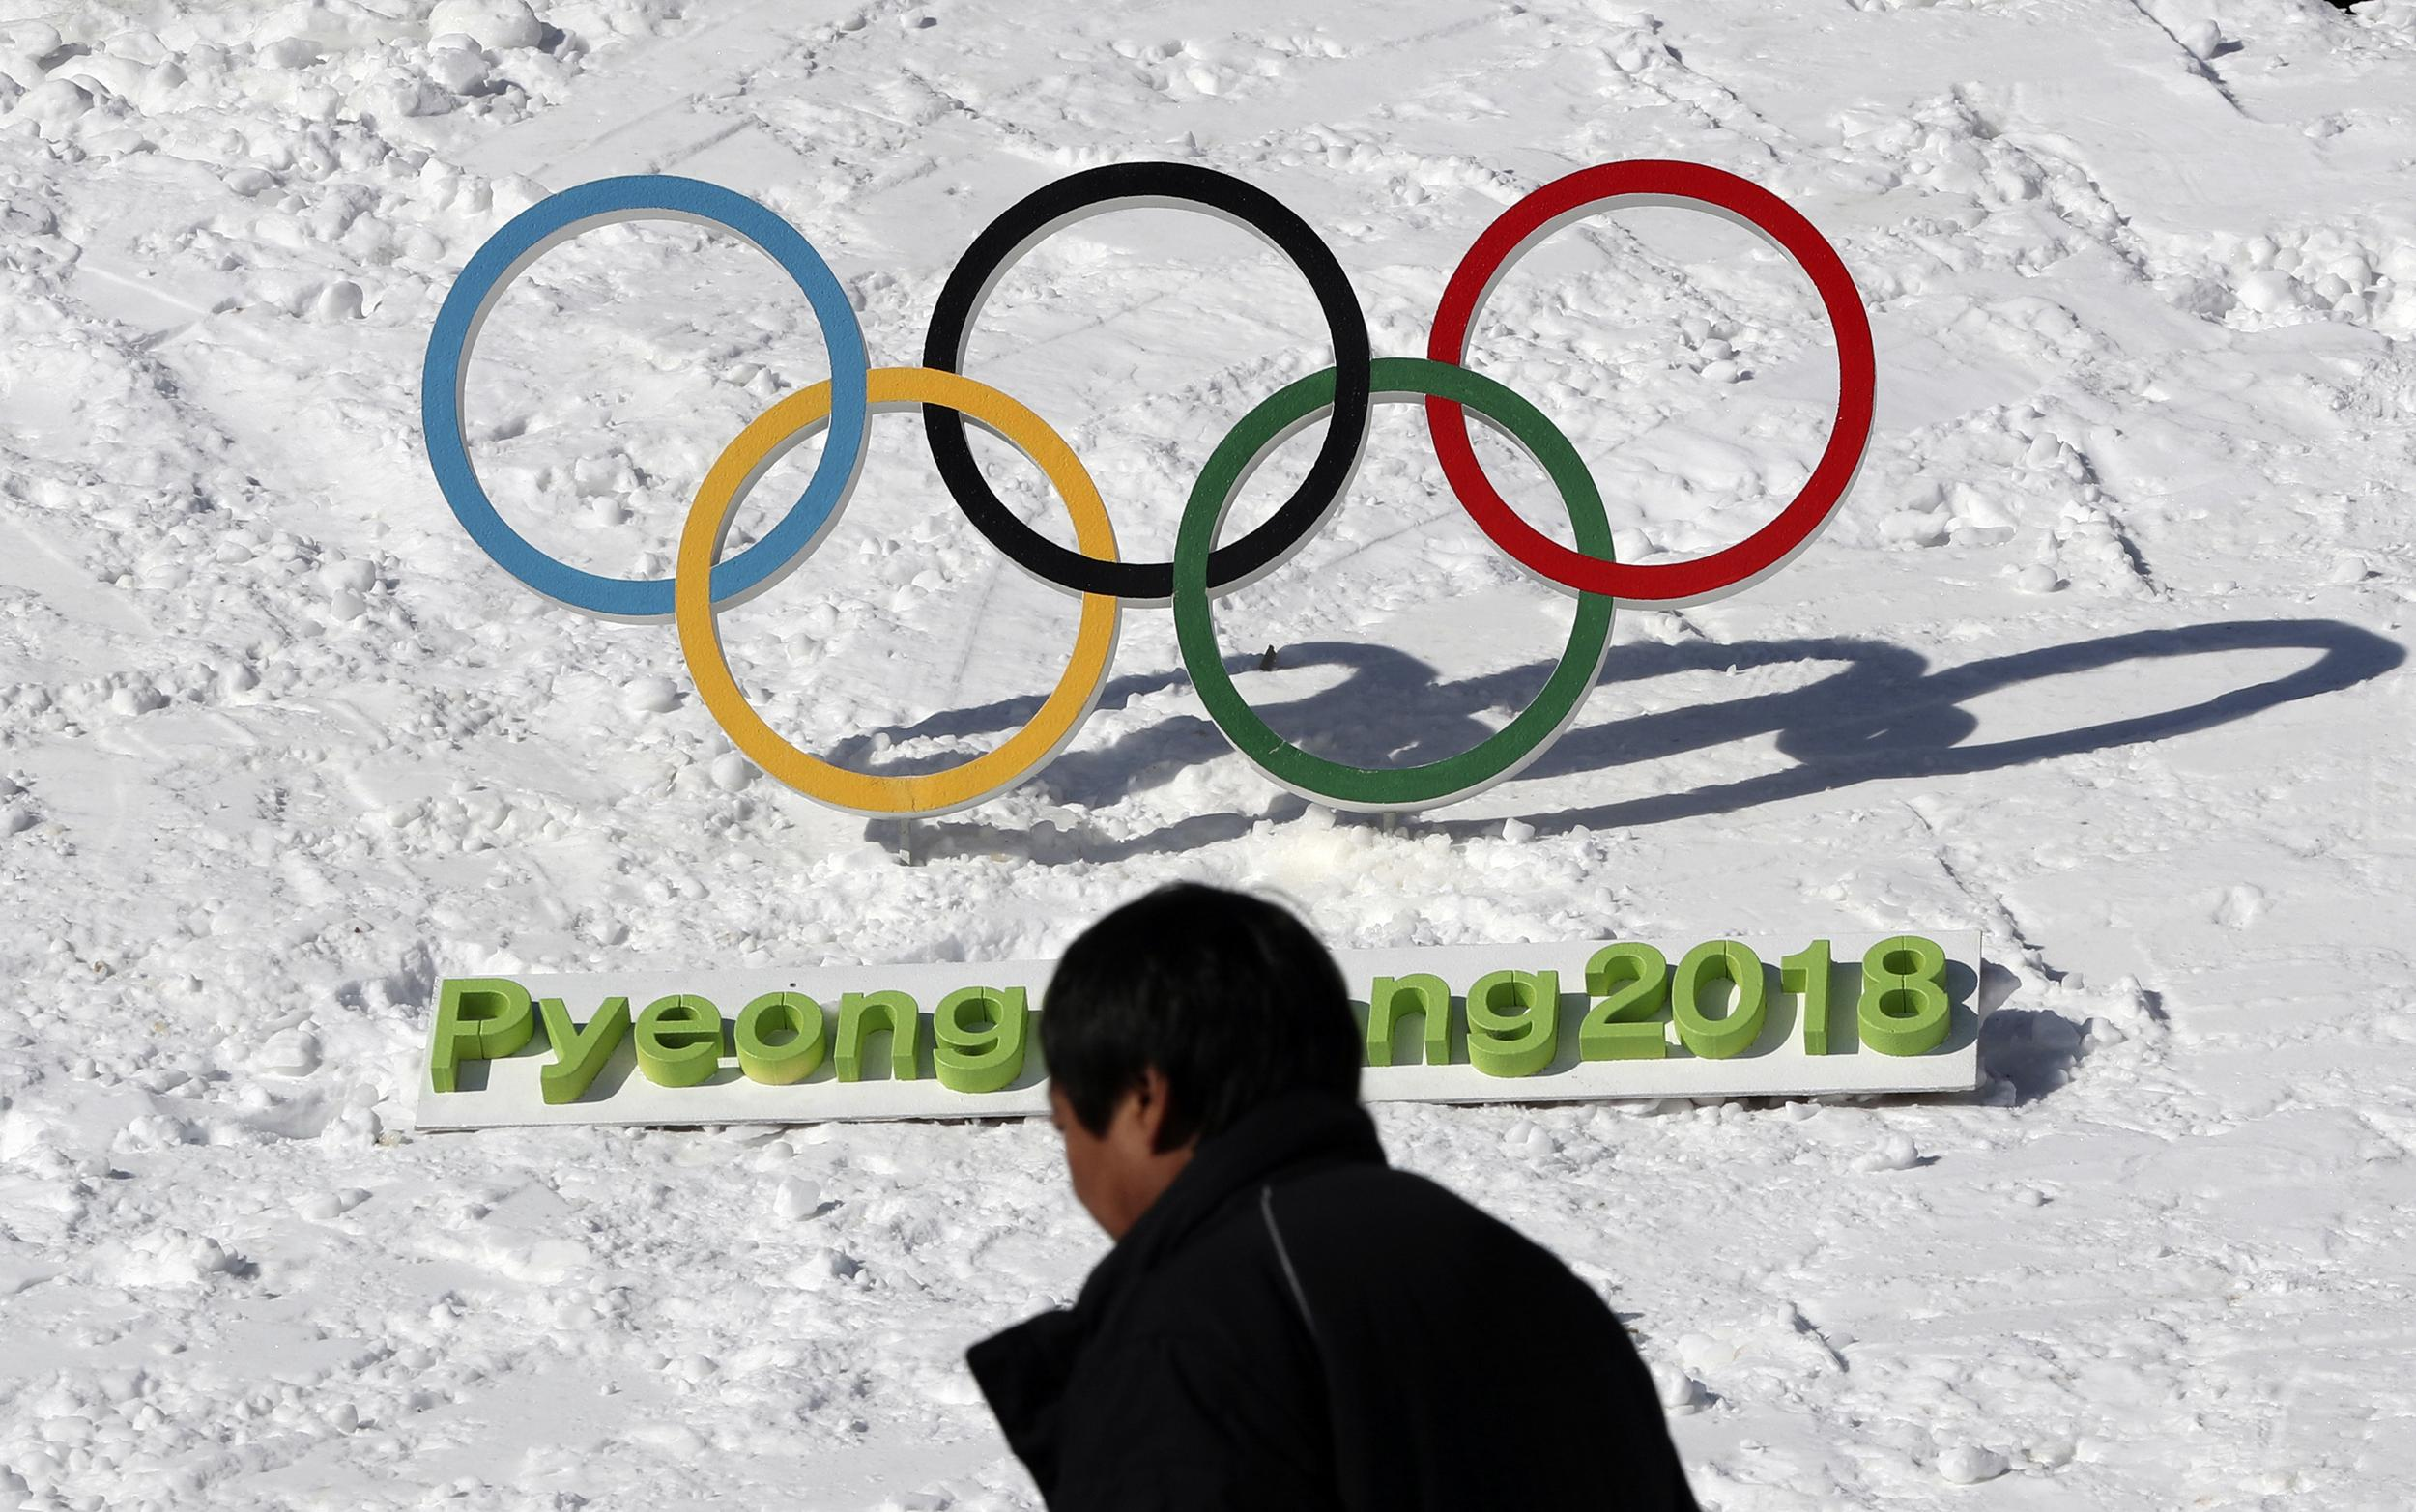 NBC's Olympic coverage apparently infuriated one man so much that he threatened to bomb an embassy. A middle-aged South Korean man was detained for threatening to blow up the Japanese embassy in Seoul with dynamite after an NBC commentator insensitively praised Japanese occupation of the Korean Peninsula, South Korea's Yonhap News AgencyreportedSunday, citing local police. …